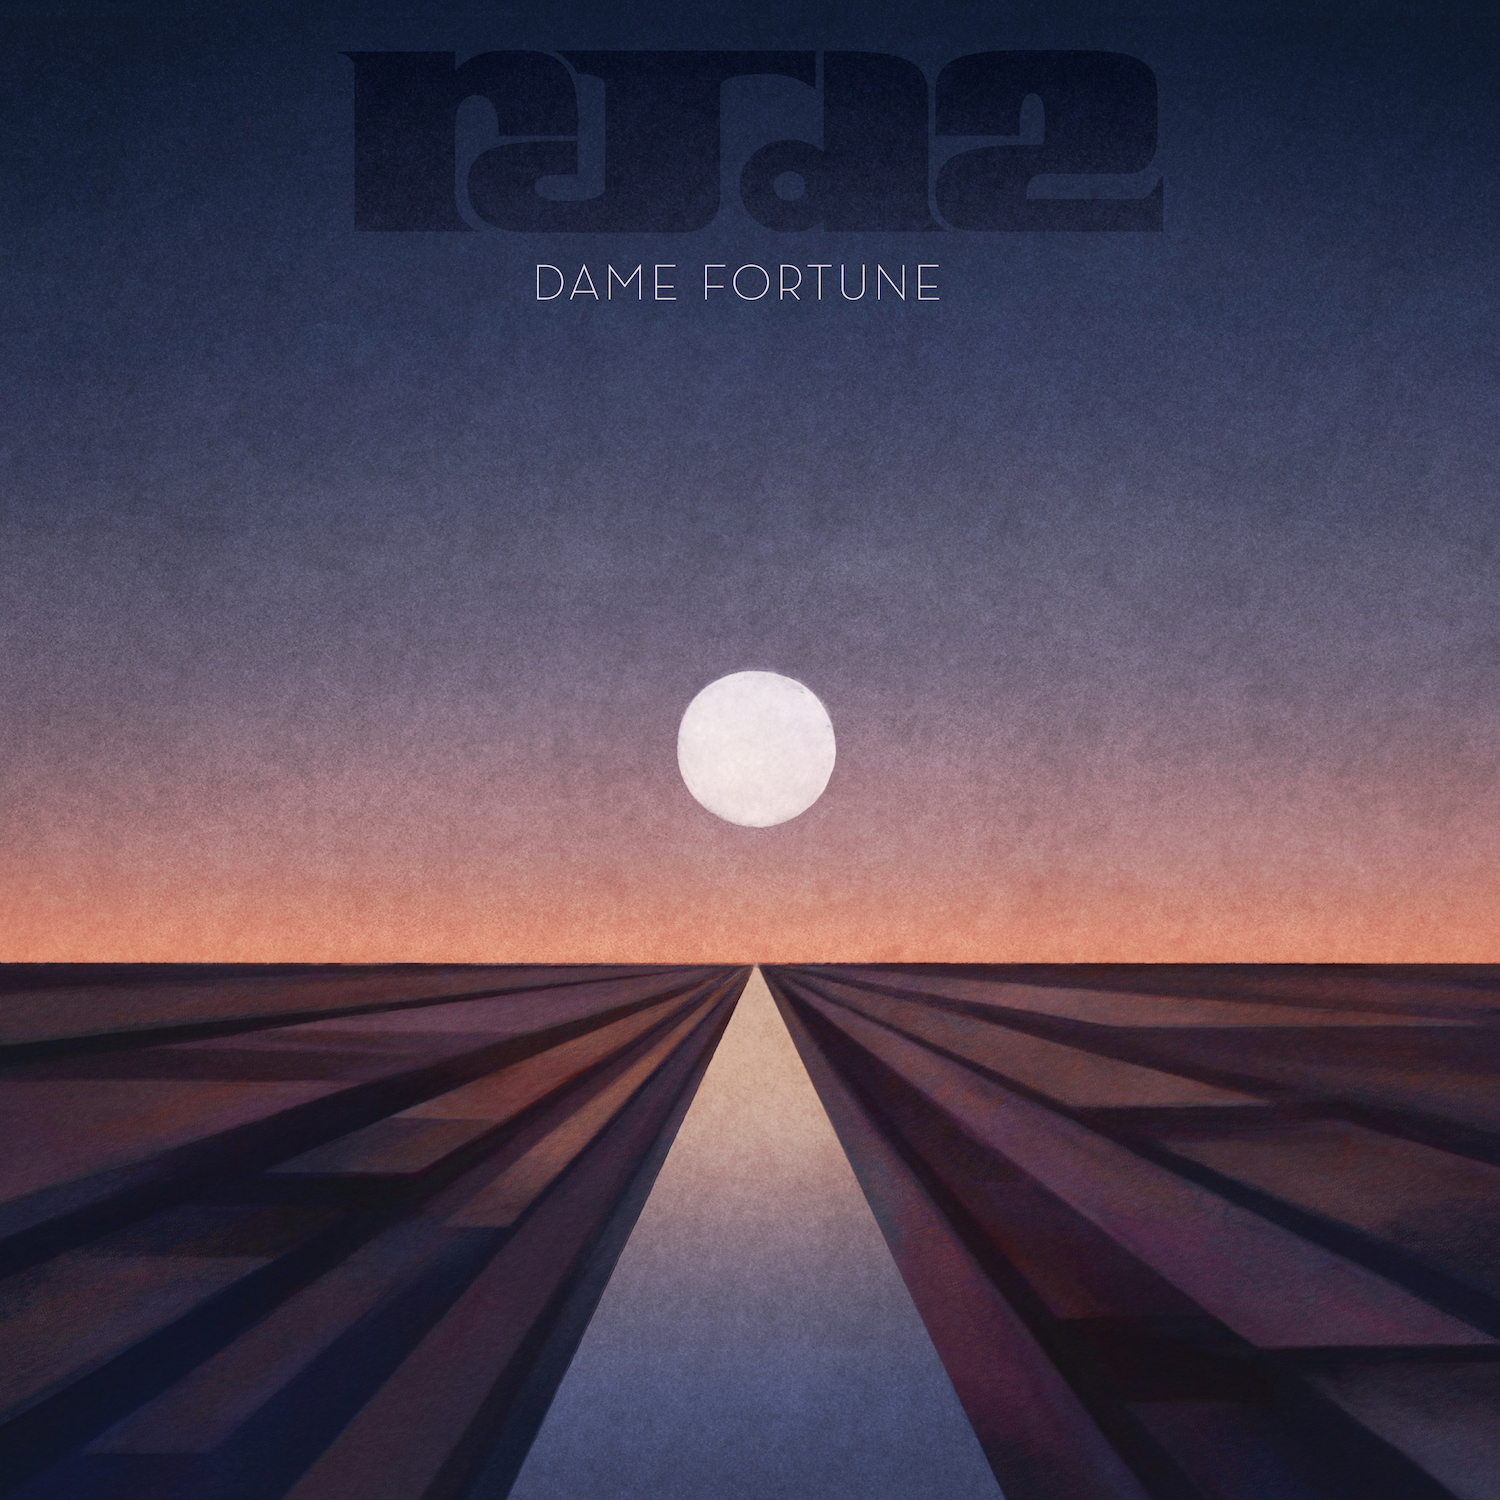 RJD2 announces new album 'Dame Fortune', out March 25TH on RJ'S Electrical Connections.